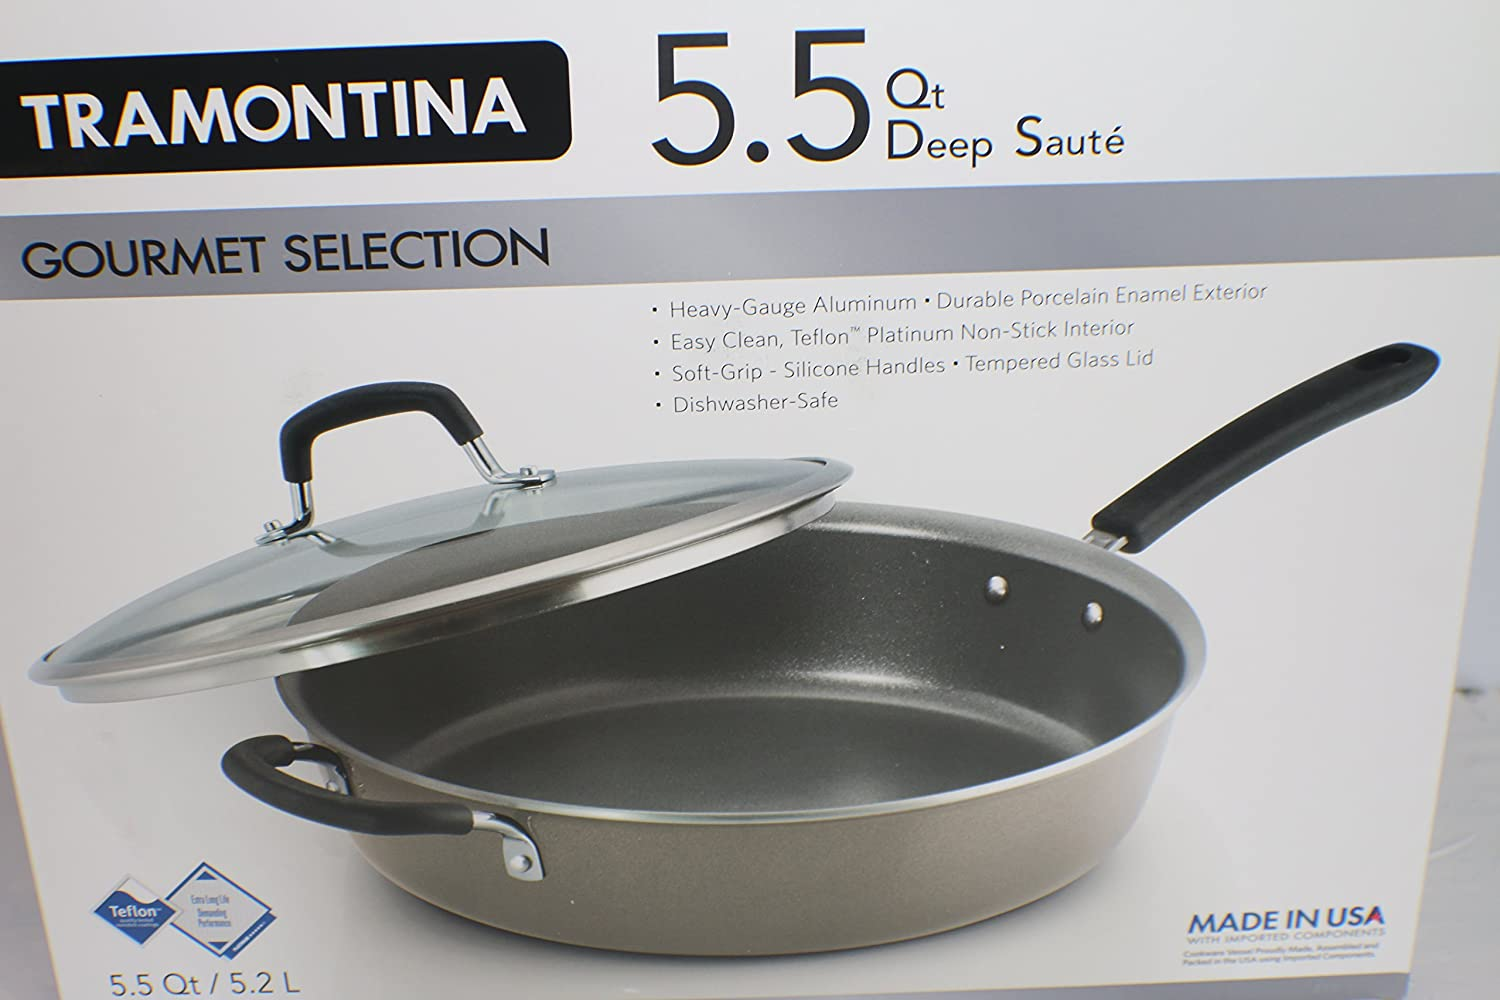 Amazon.com : Tramontina 5.5 qt Deep Saute Cookware Dishwasher Safe ...